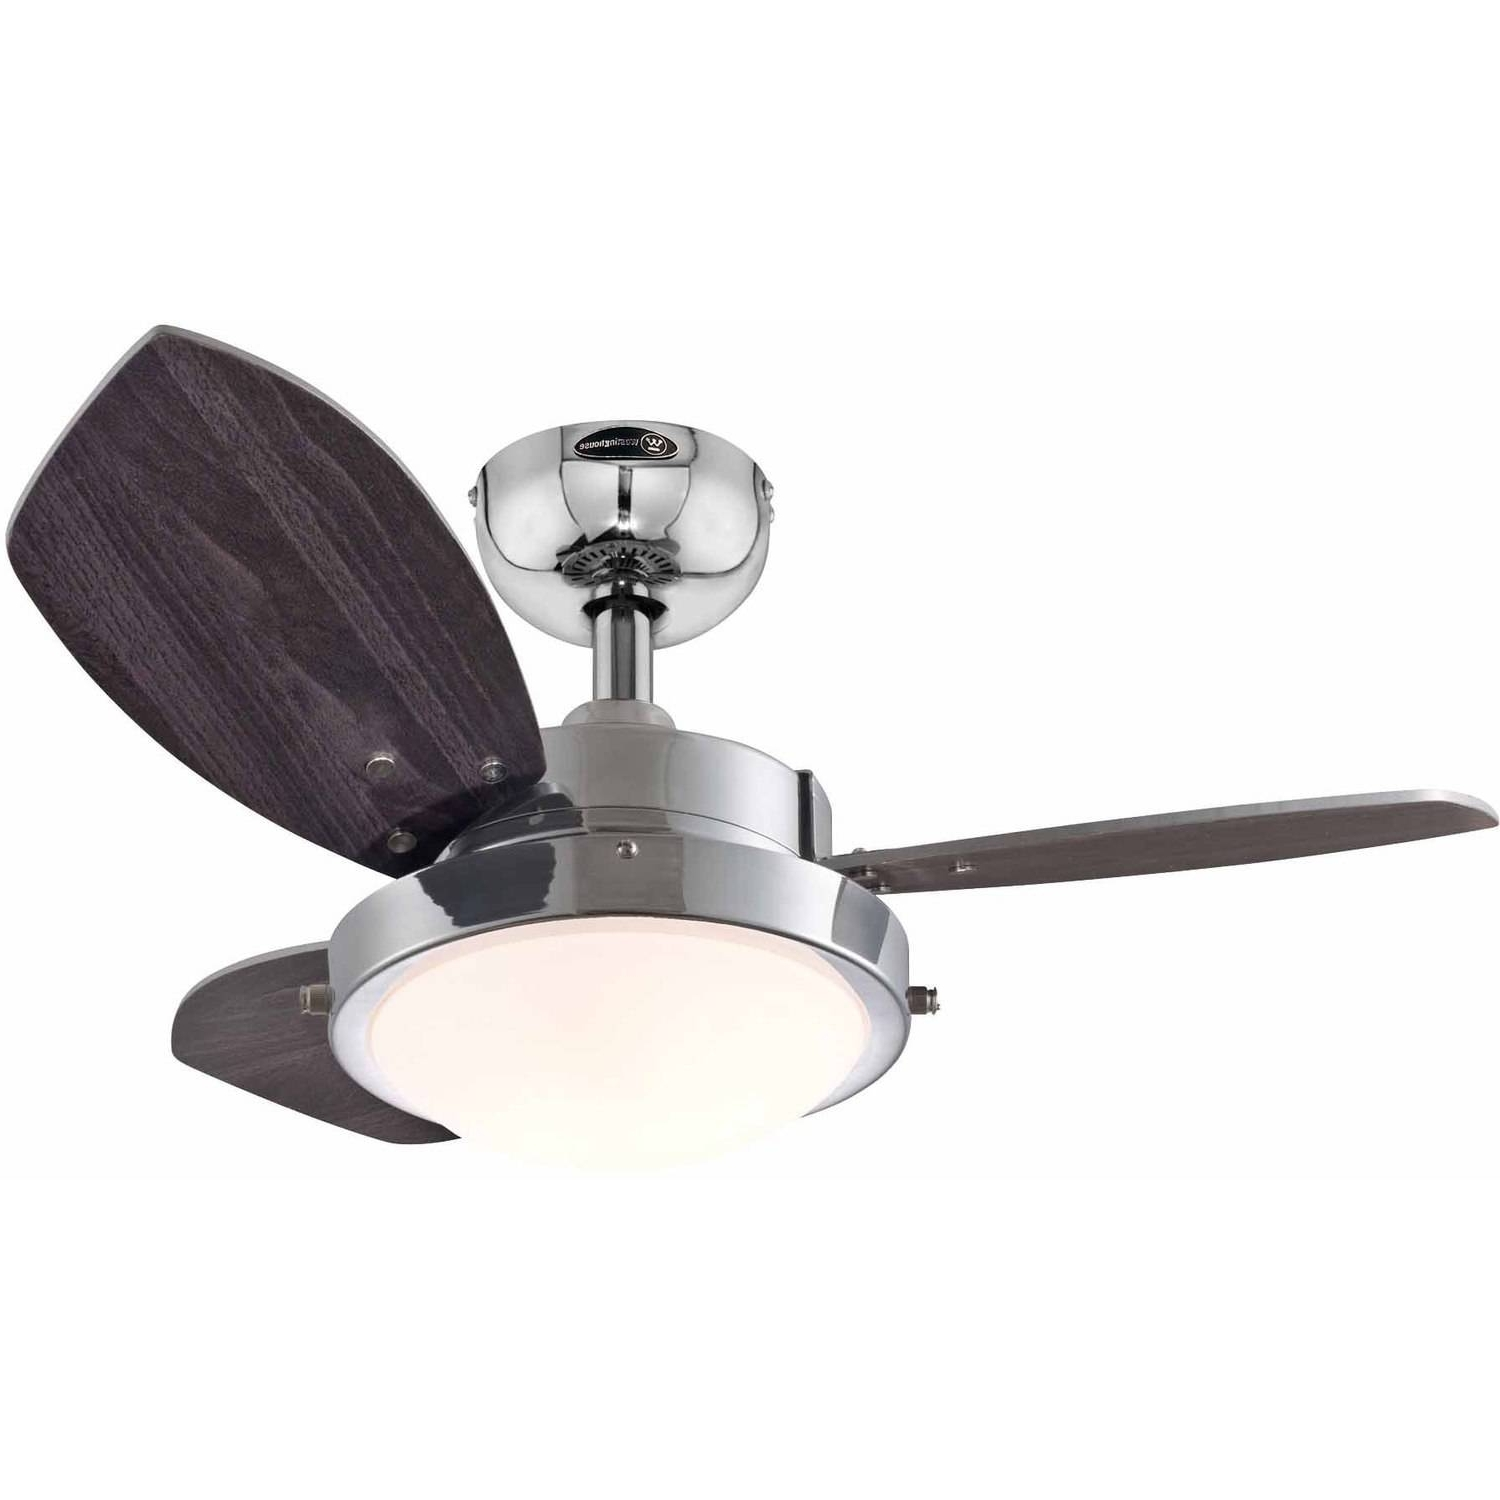 """Westinghouse 7224300 24"""" Quince Reversible Indoor Ceiling Fan Inside Best And Newest Outdoor Ceiling Fans At Walmart (View 14 of 20)"""